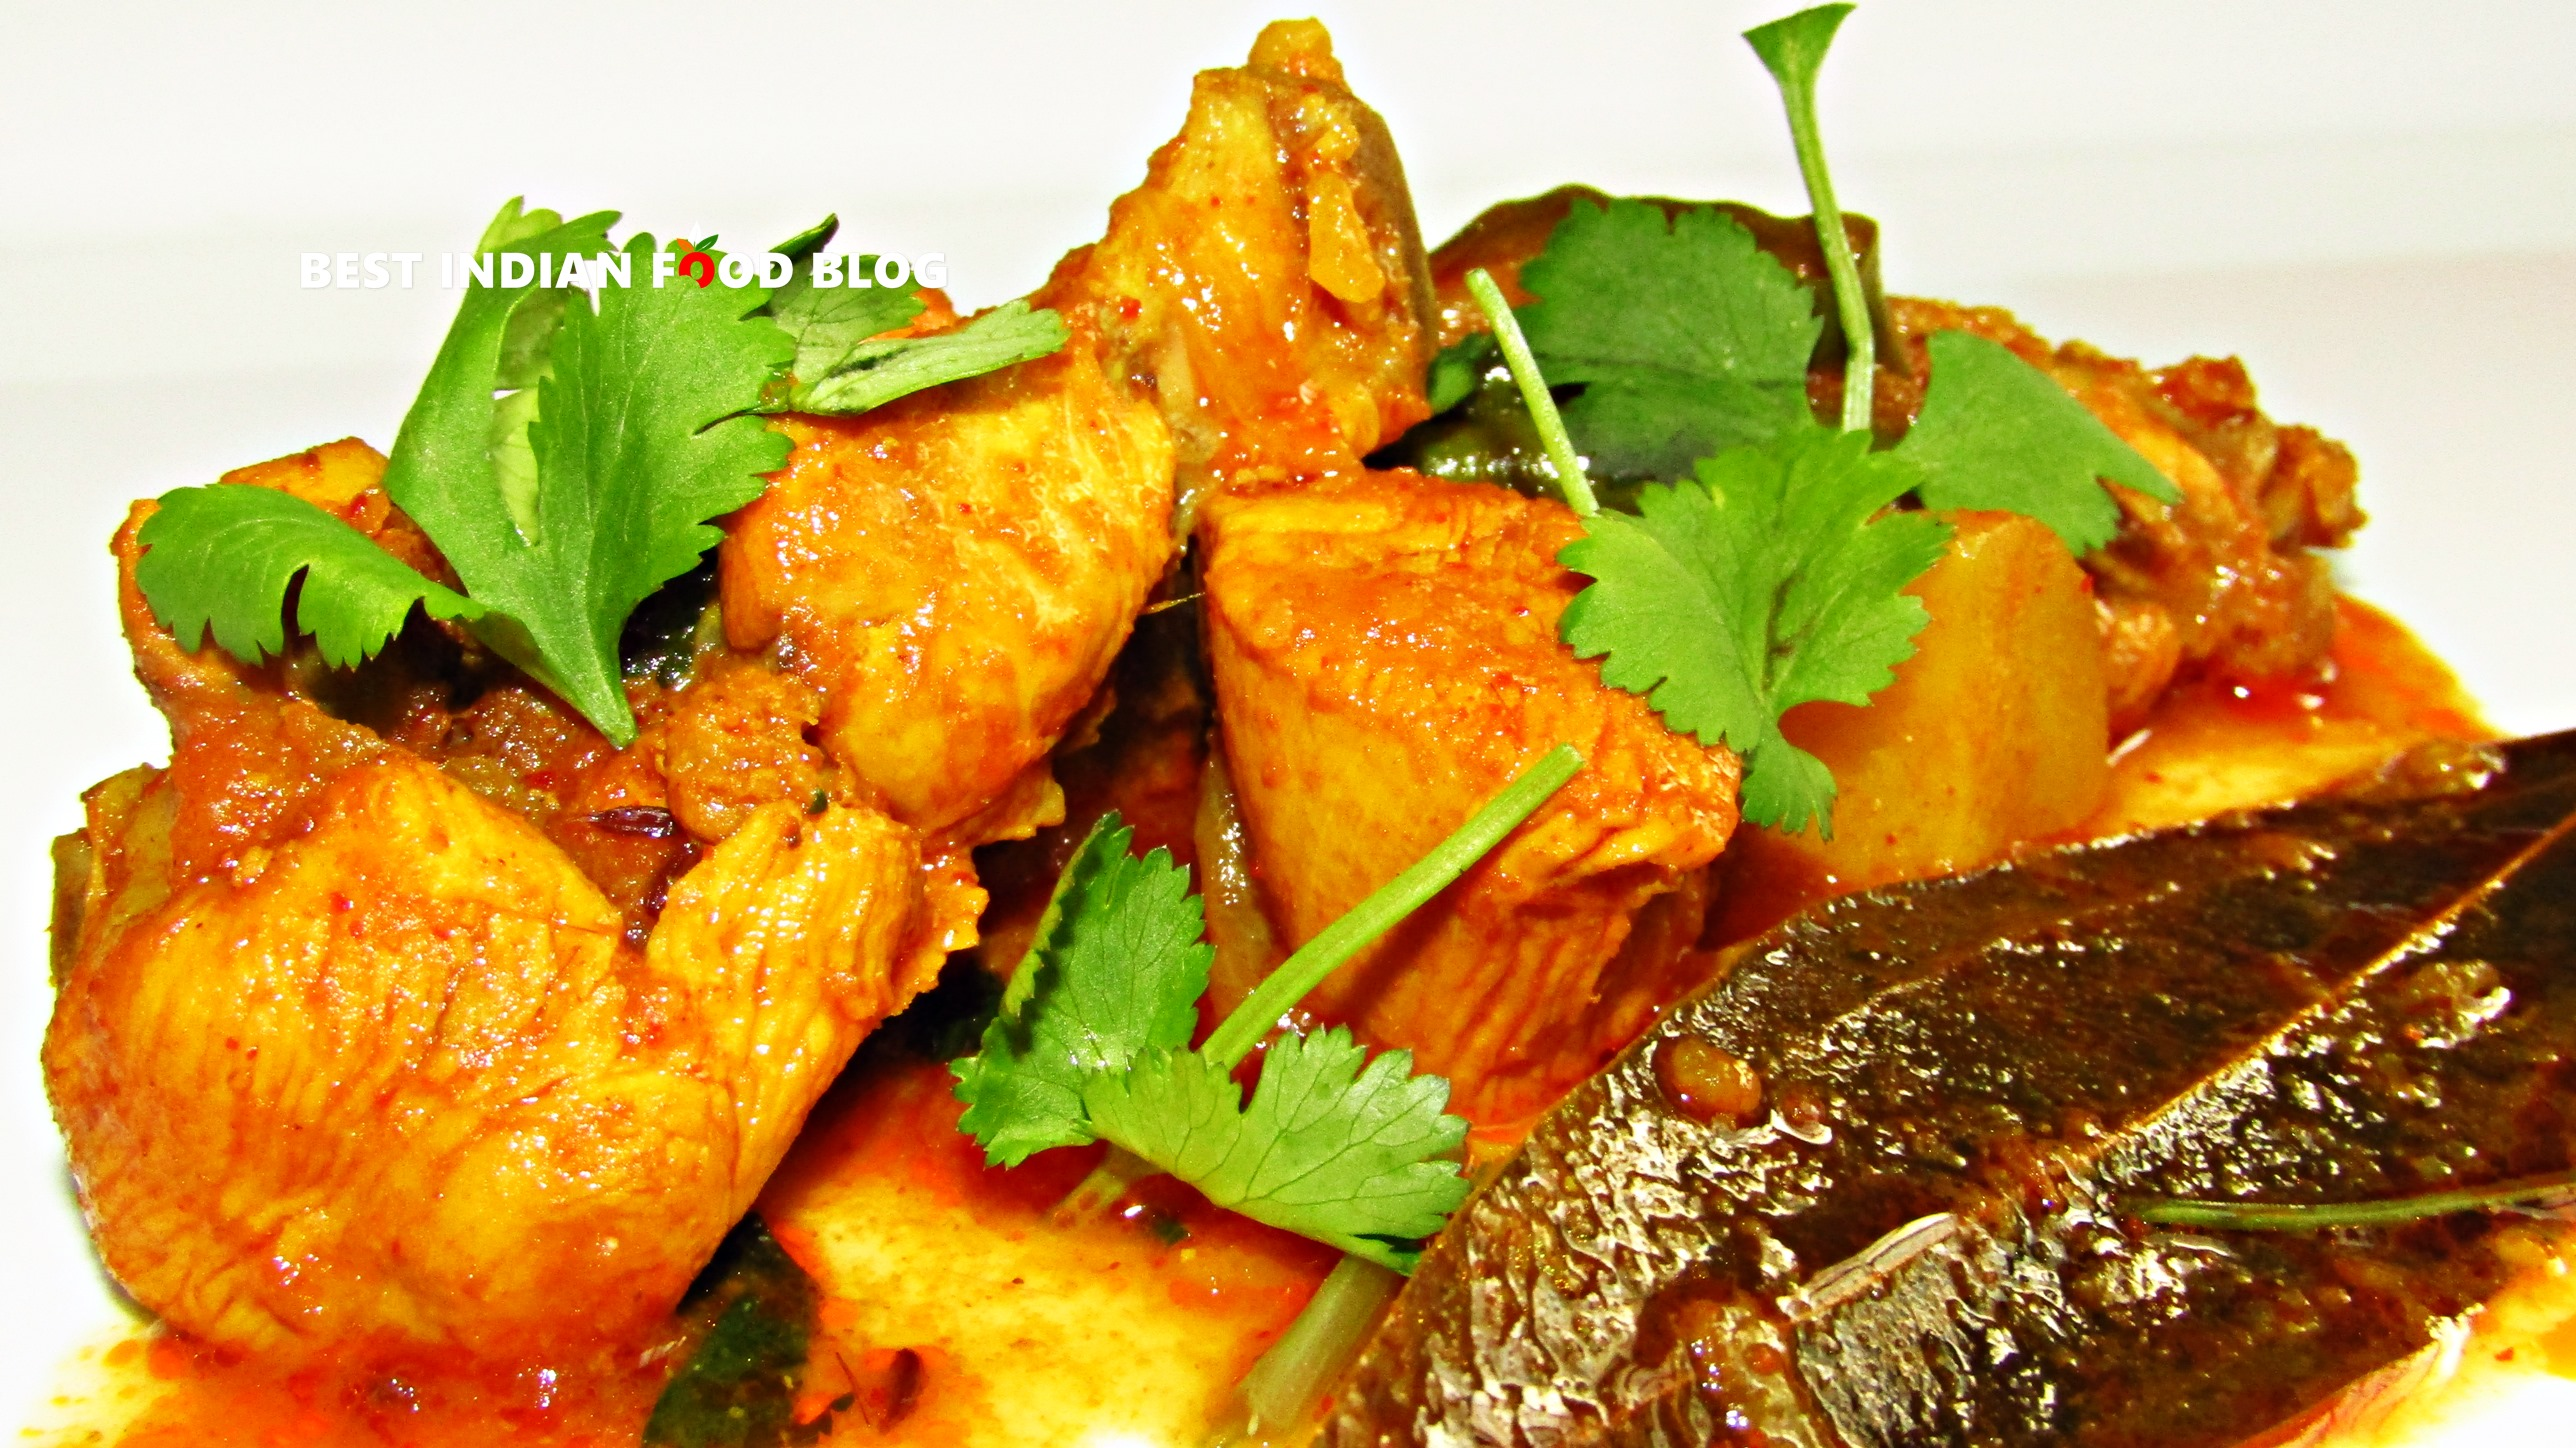 Yen Thongba from Manipur, India | Best Indian Food Blog | Chicken recipe